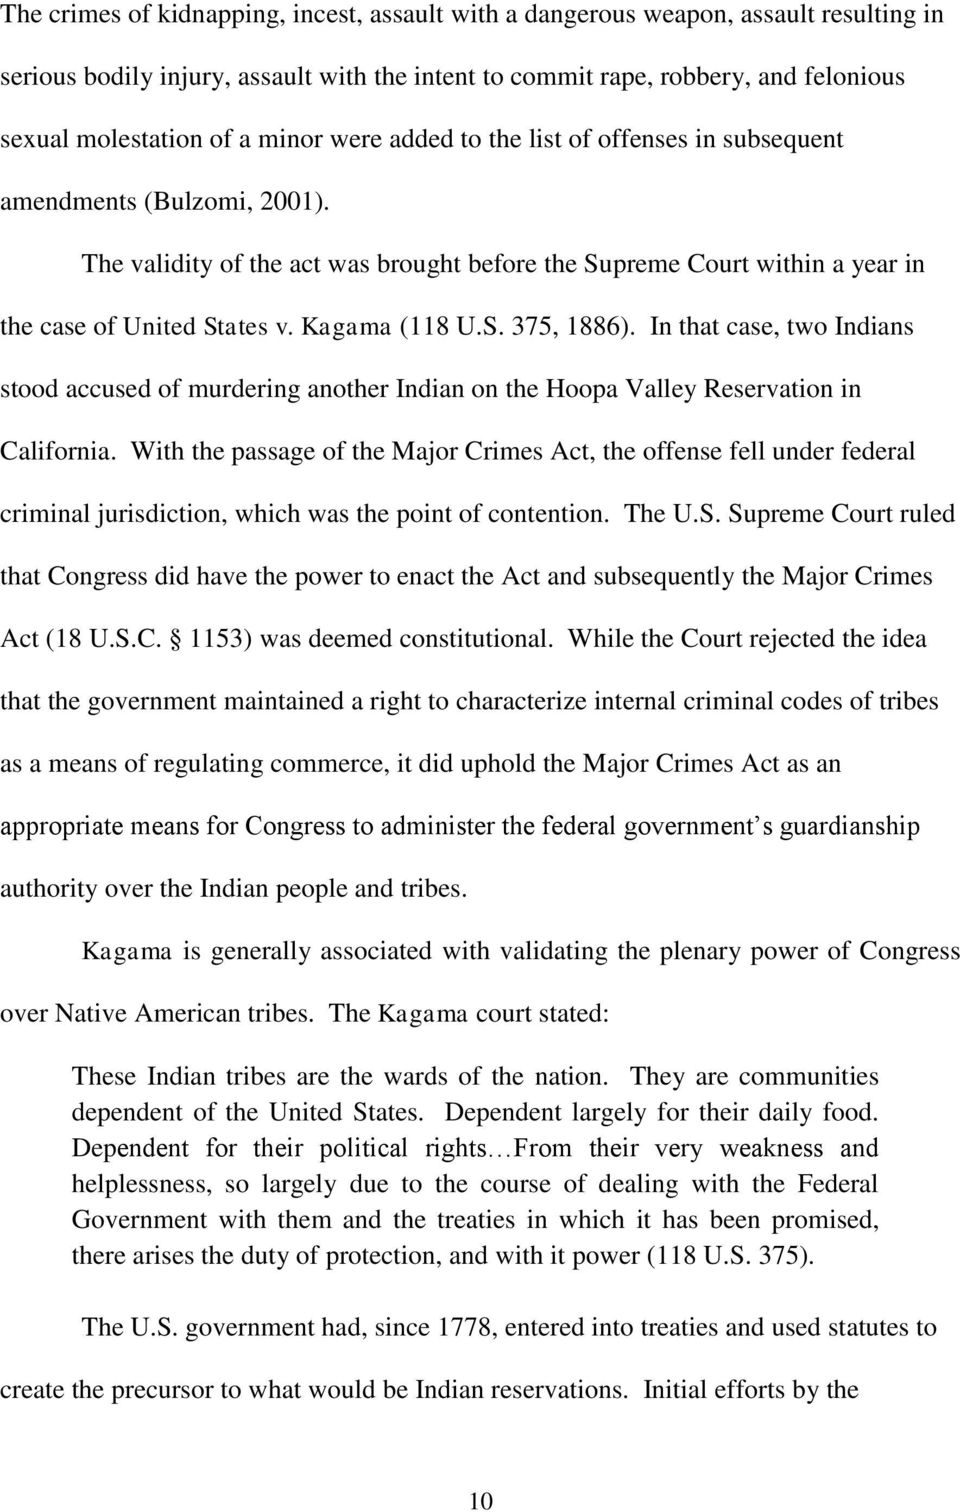 Kagama (118 U.S. 375, 1886). In that case, two Indians stood accused of murdering another Indian on the Hoopa Valley Reservation in California.